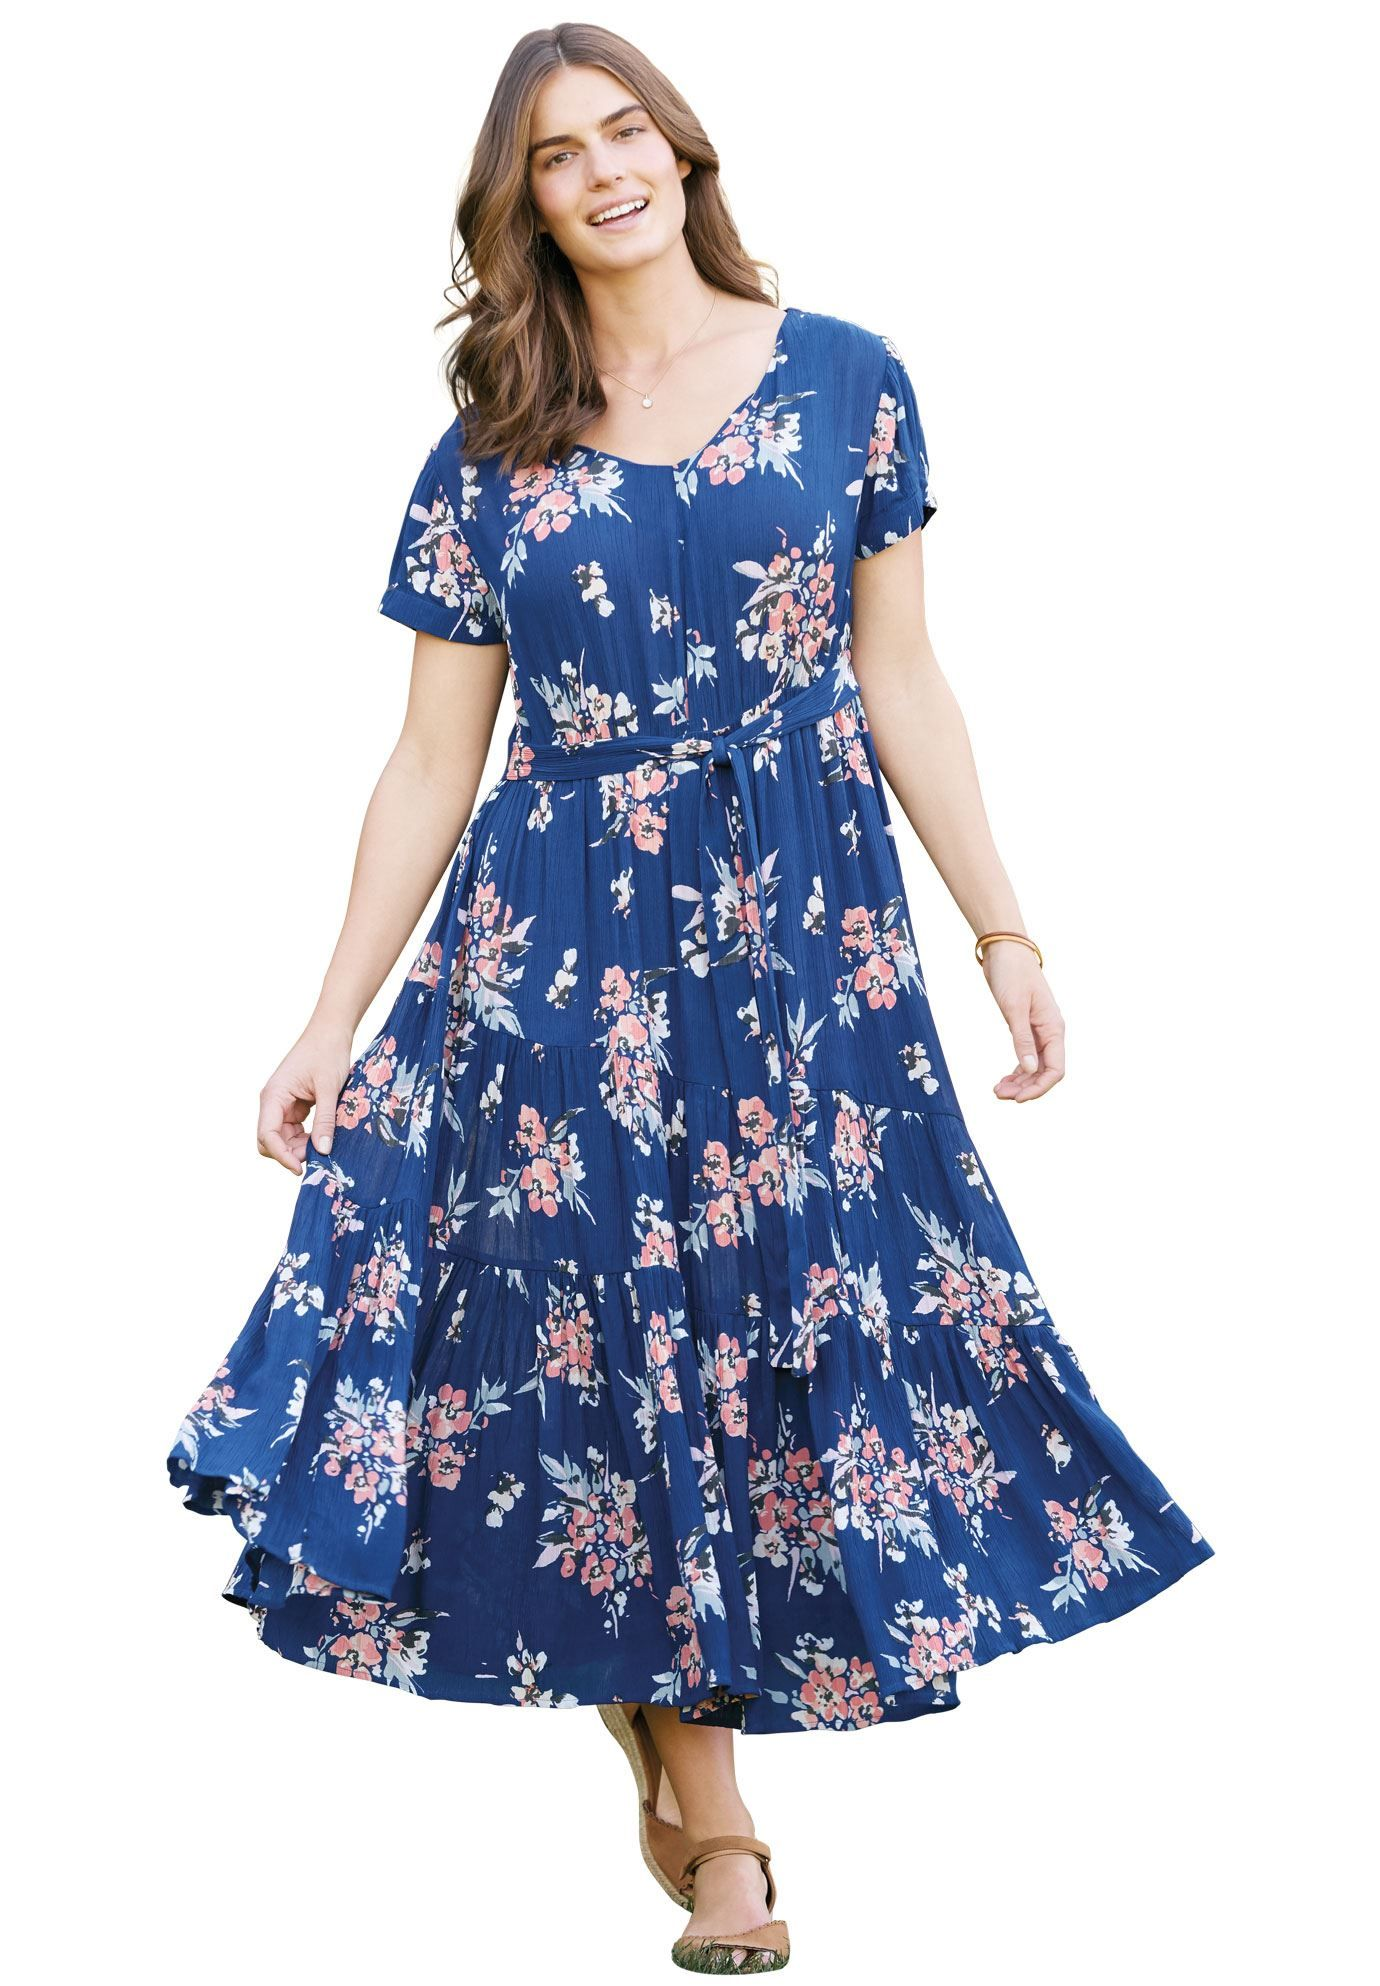 843a0bcad5bec Tiered Floral Crinkle Dress - Women's Plus Size Clothing | Products ...